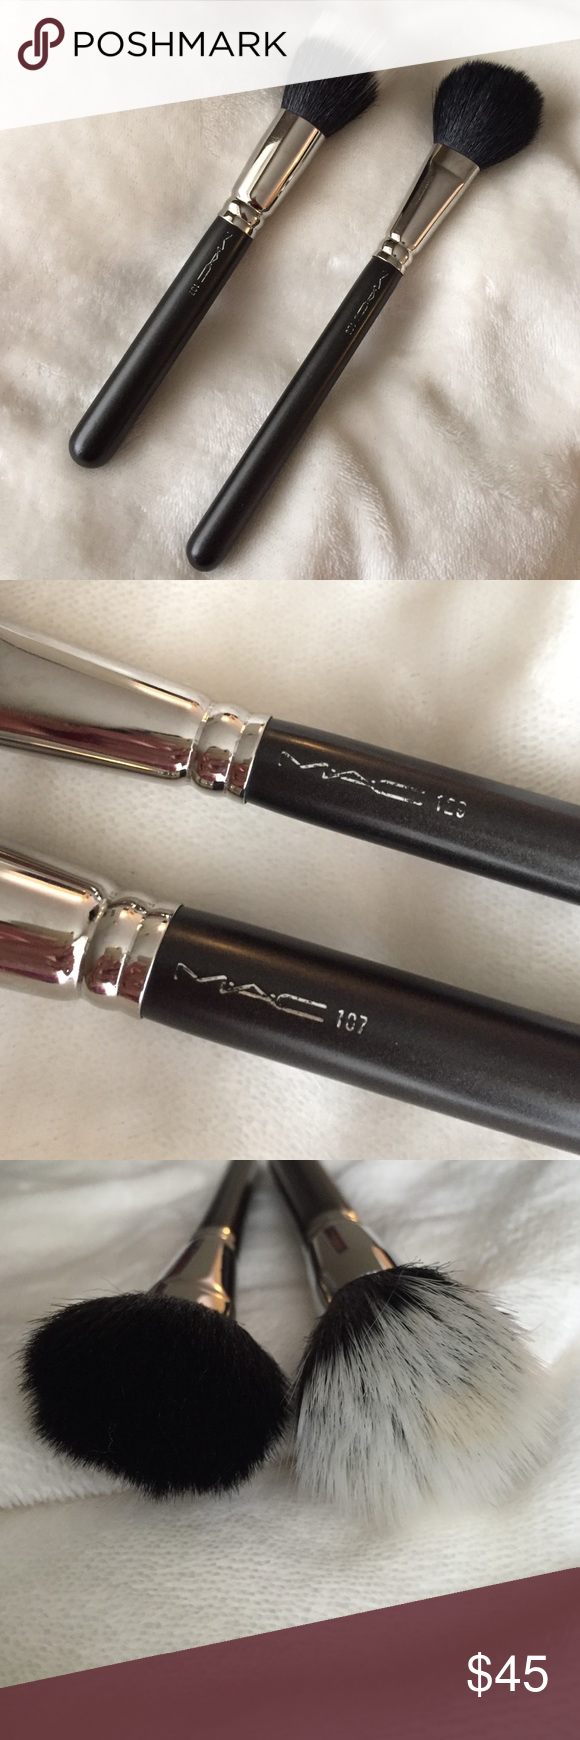 MAC 129 & 187 Synthetic Face Brush Set This post includes the 187 Duo Fibre Face brush & 129 Powder/Blush Brush. Both are used and still in great condition! The 129 brush has a full rounded shape, perfect for applying powder or blush on the cheeks. The 187 brush has a circular shape and is used for lightweight application and blending face powder or pigments. I personally love it for foundation and highlight. Its made from a soft blend of goat and synthetic fibres. All hand sculpted with…